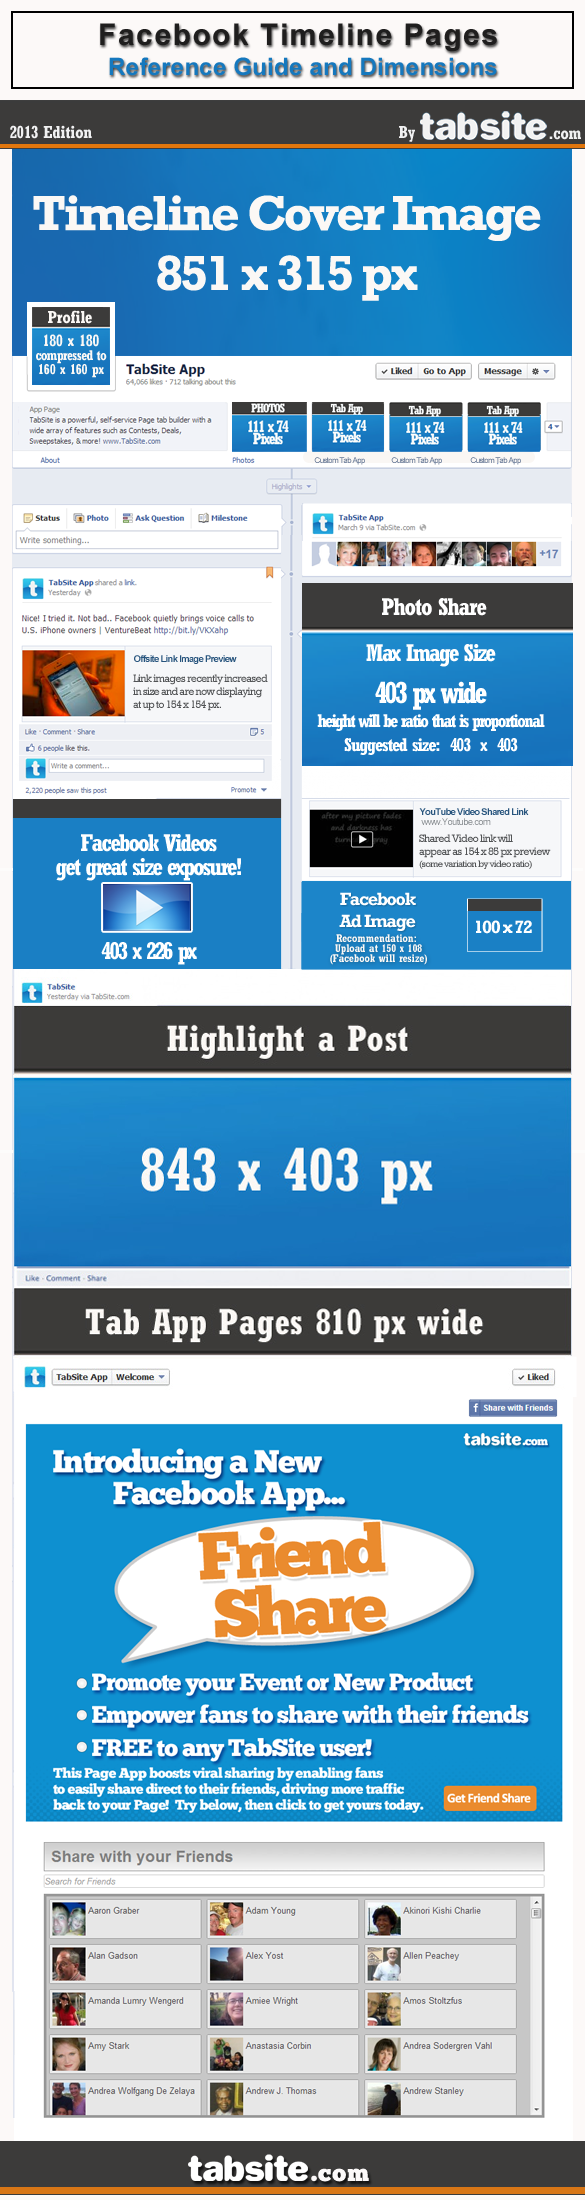 Facebook Timeline Pages Image Dimensions and Guide - Infographic ...